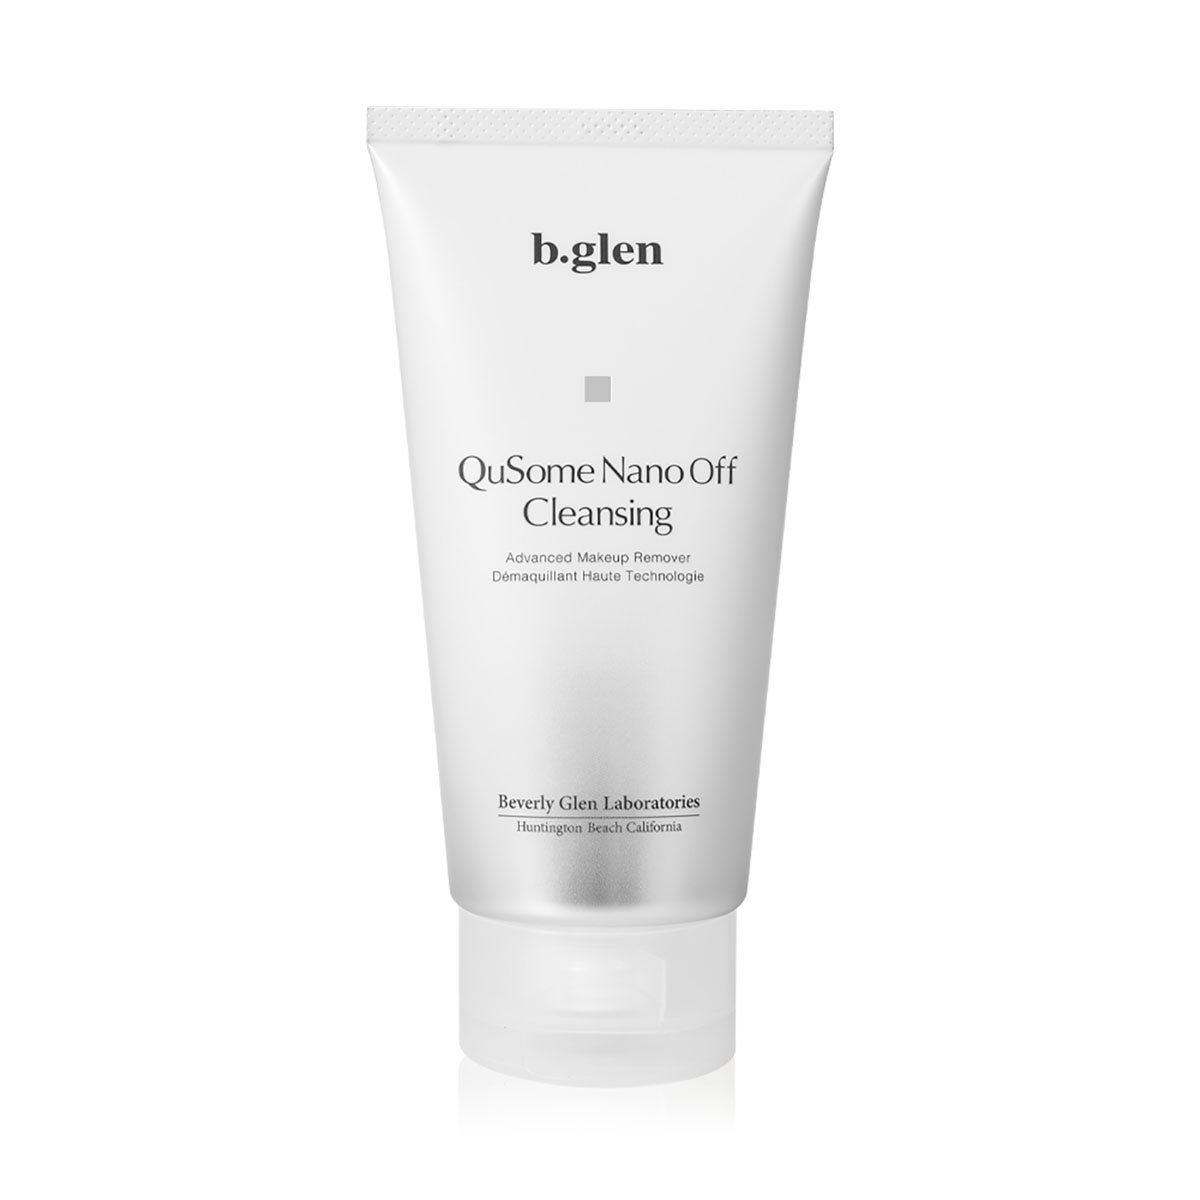 QuSome NanoOff Cleansing Makeup Remover Gel 120g